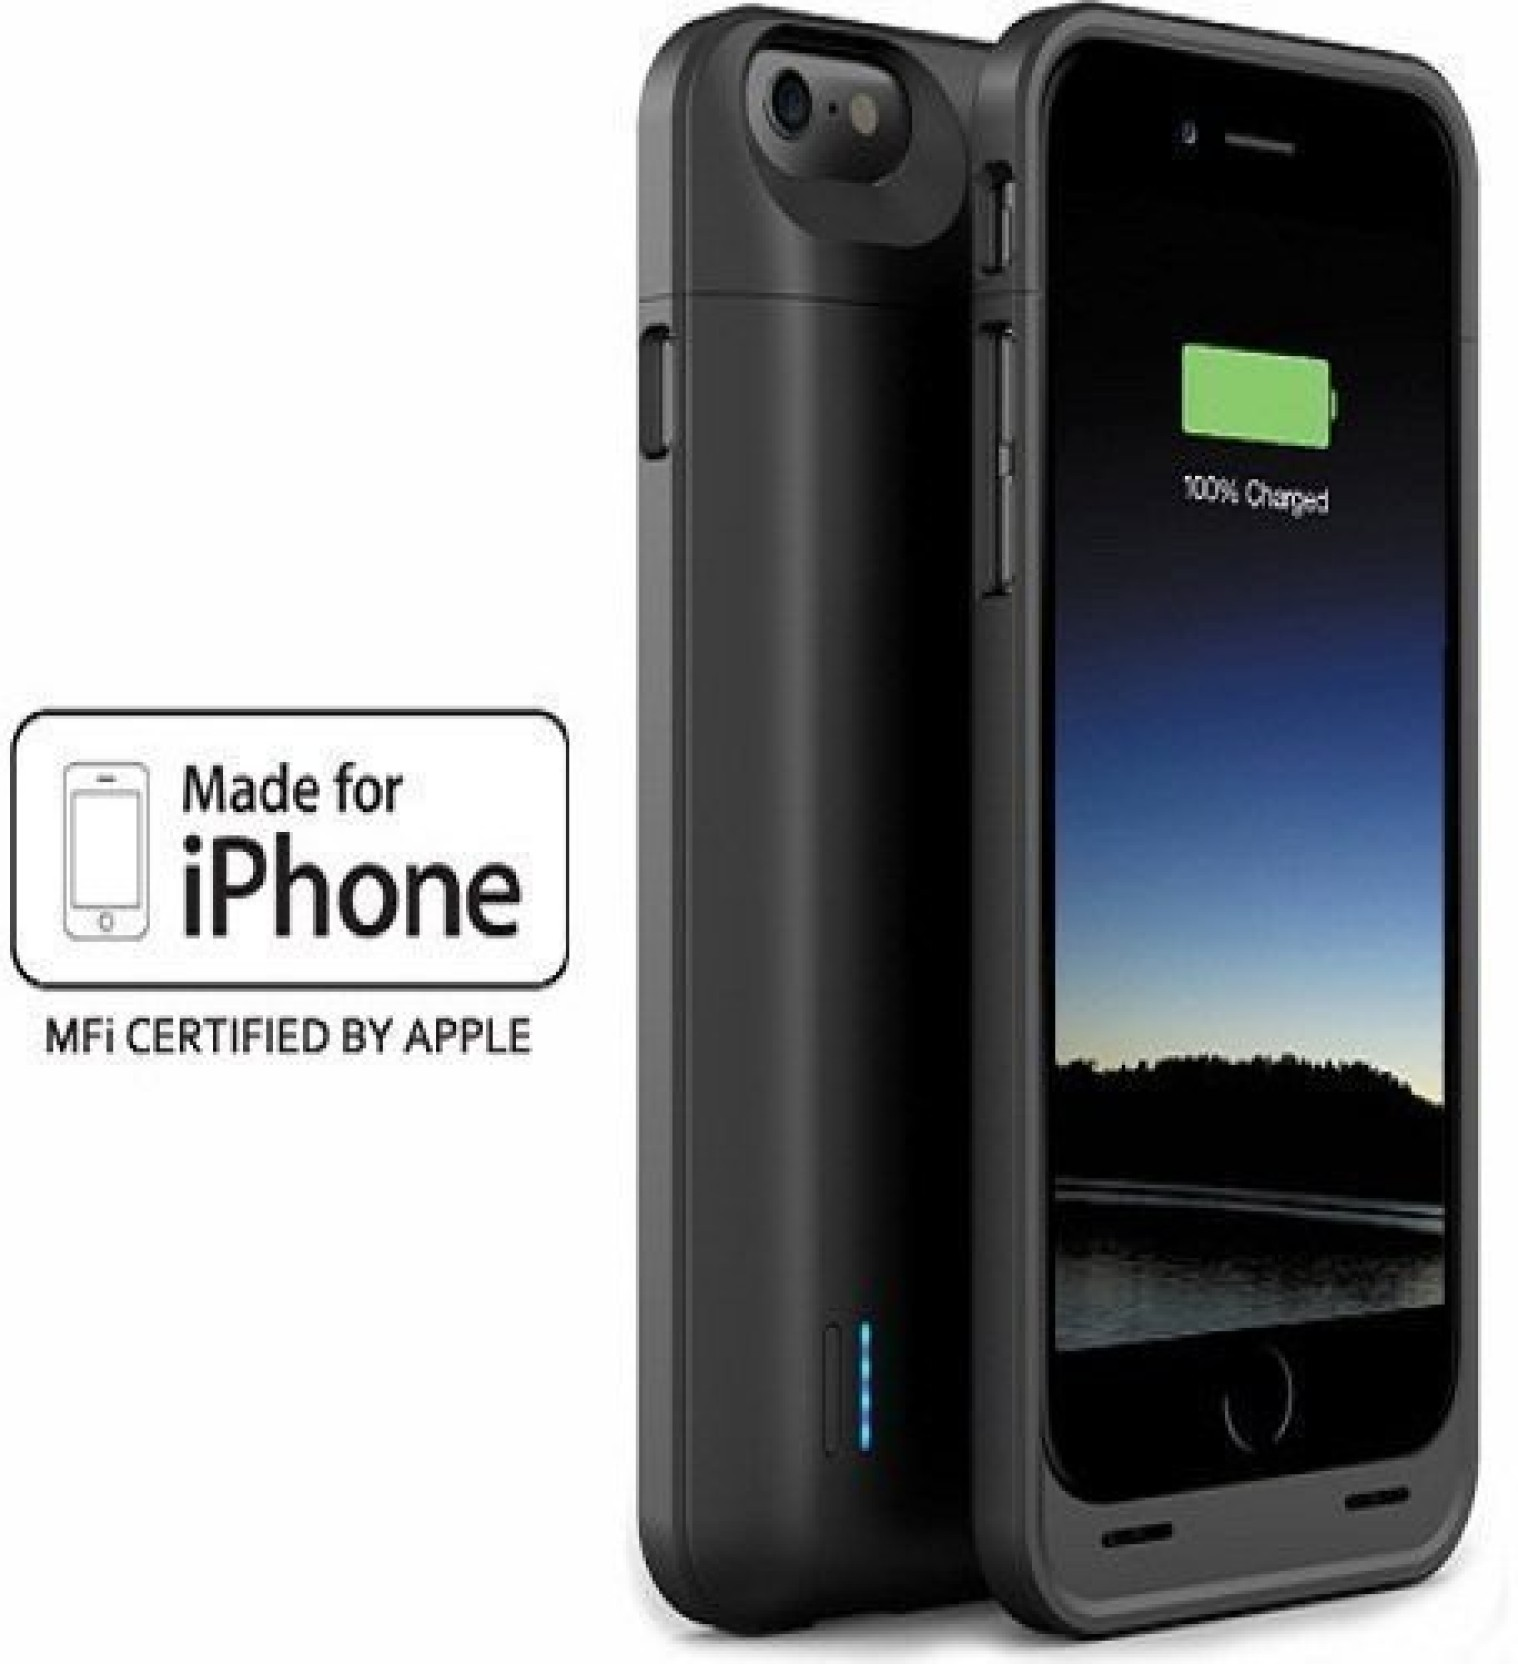 Zaap Back Cover For Iphone 6 6s Power Case Juice Pack Plus Powerbank Backcover 5 Share